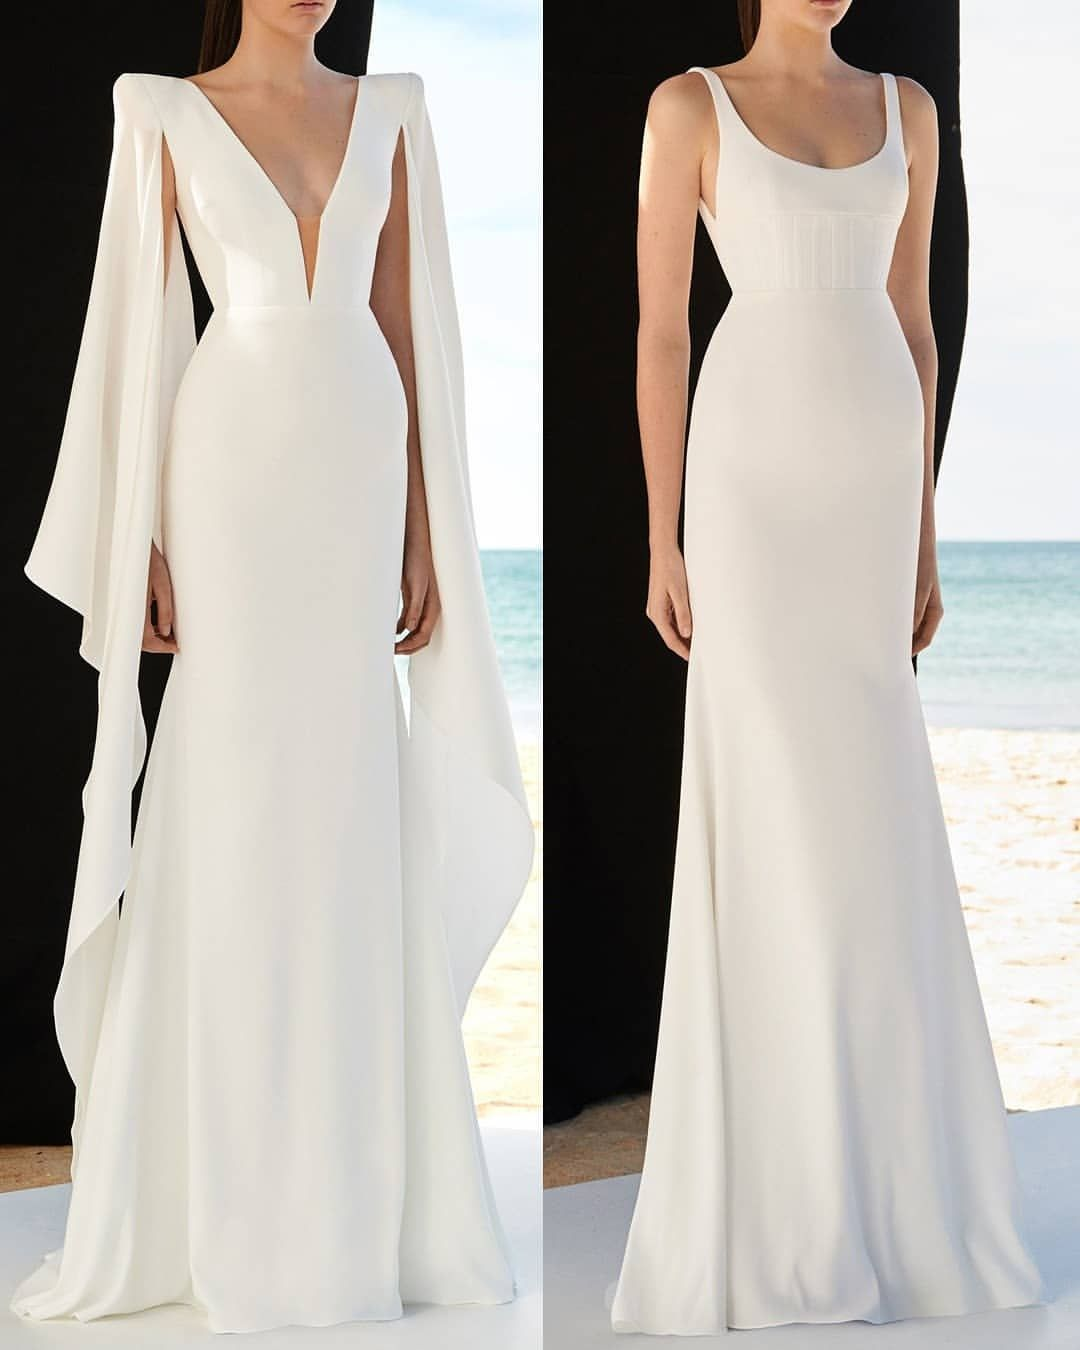 Classy and Posh ? ? 20   20 ? dress by alexperryofficial ...